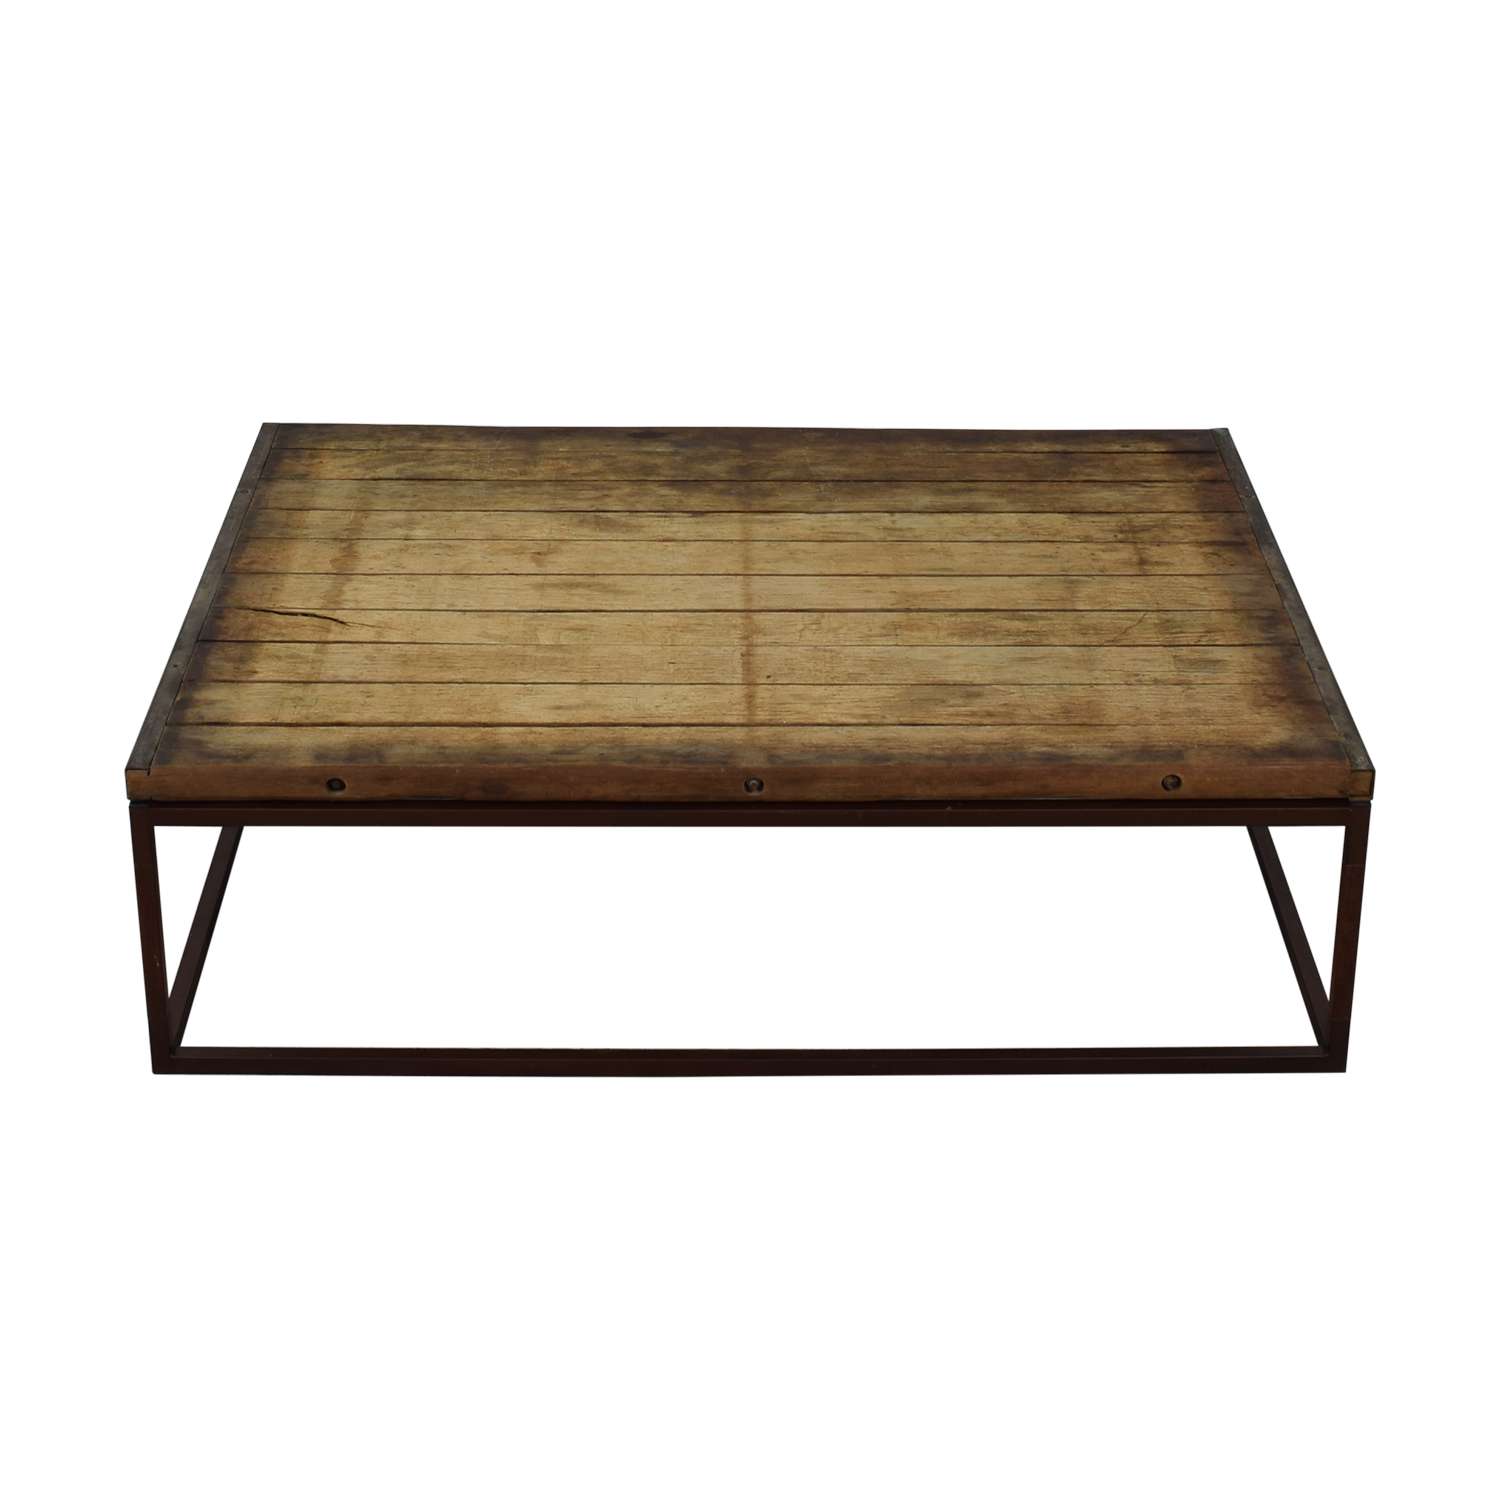 Restoration Hardware Restoration Hardware Bricklayer's Coffee Table on sale